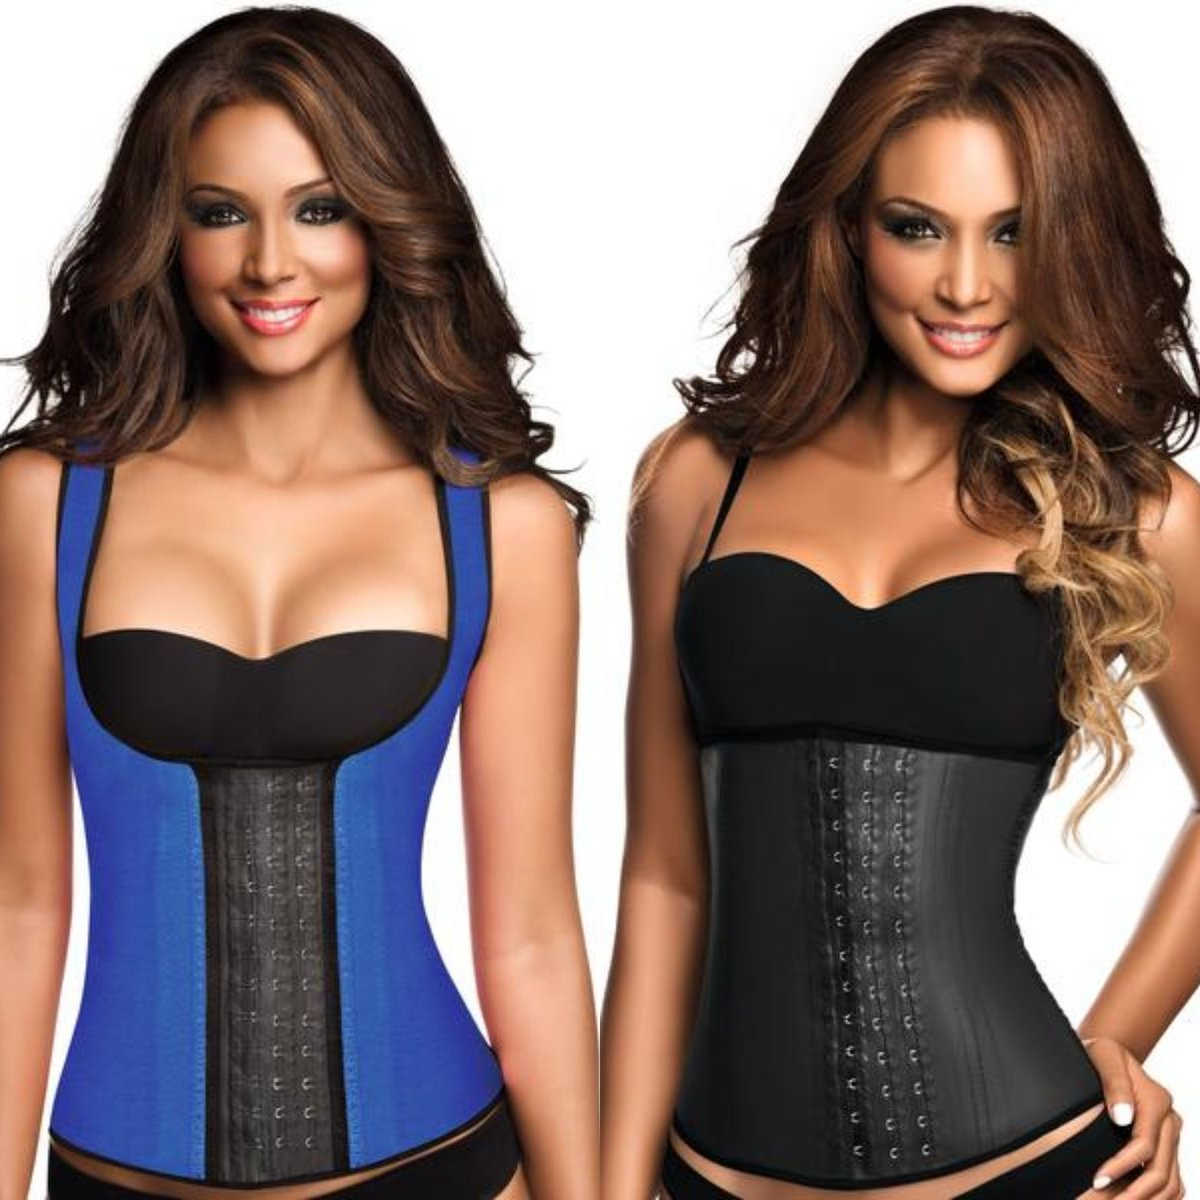 715ecfbd5 ✓Get Results Fast with a Sports Latex Waist Trainer! ▫ Authentic Brazillian Waist  Cinchers